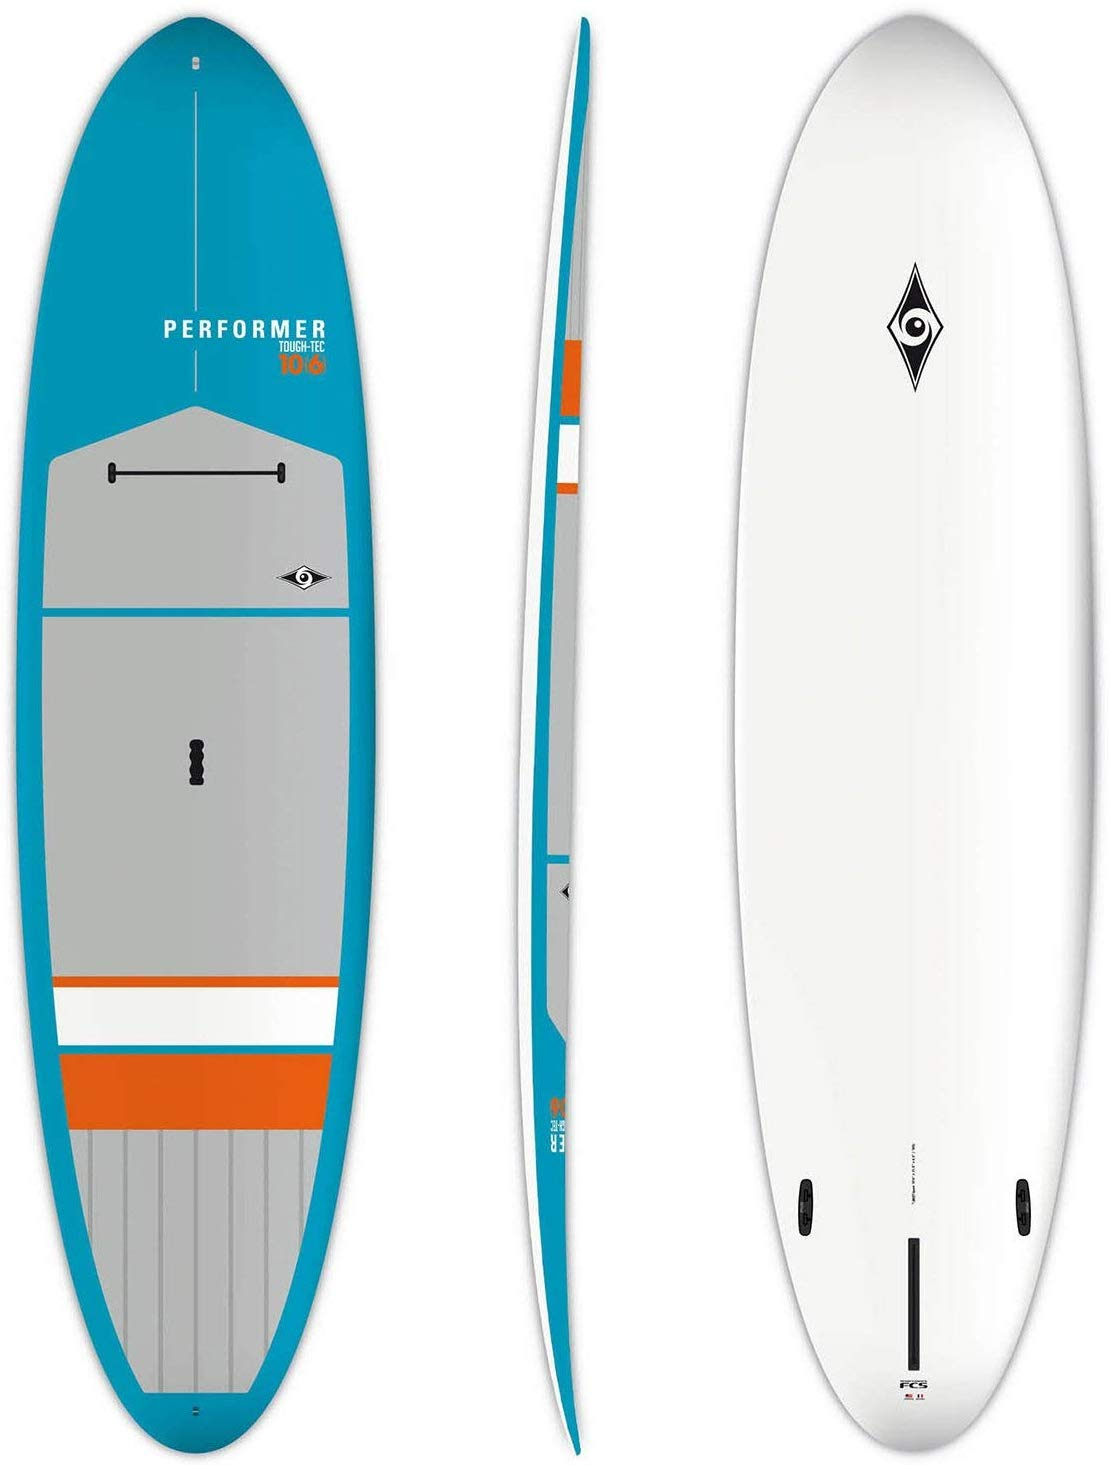 paddle gonflable BIC performer tough-tec sup